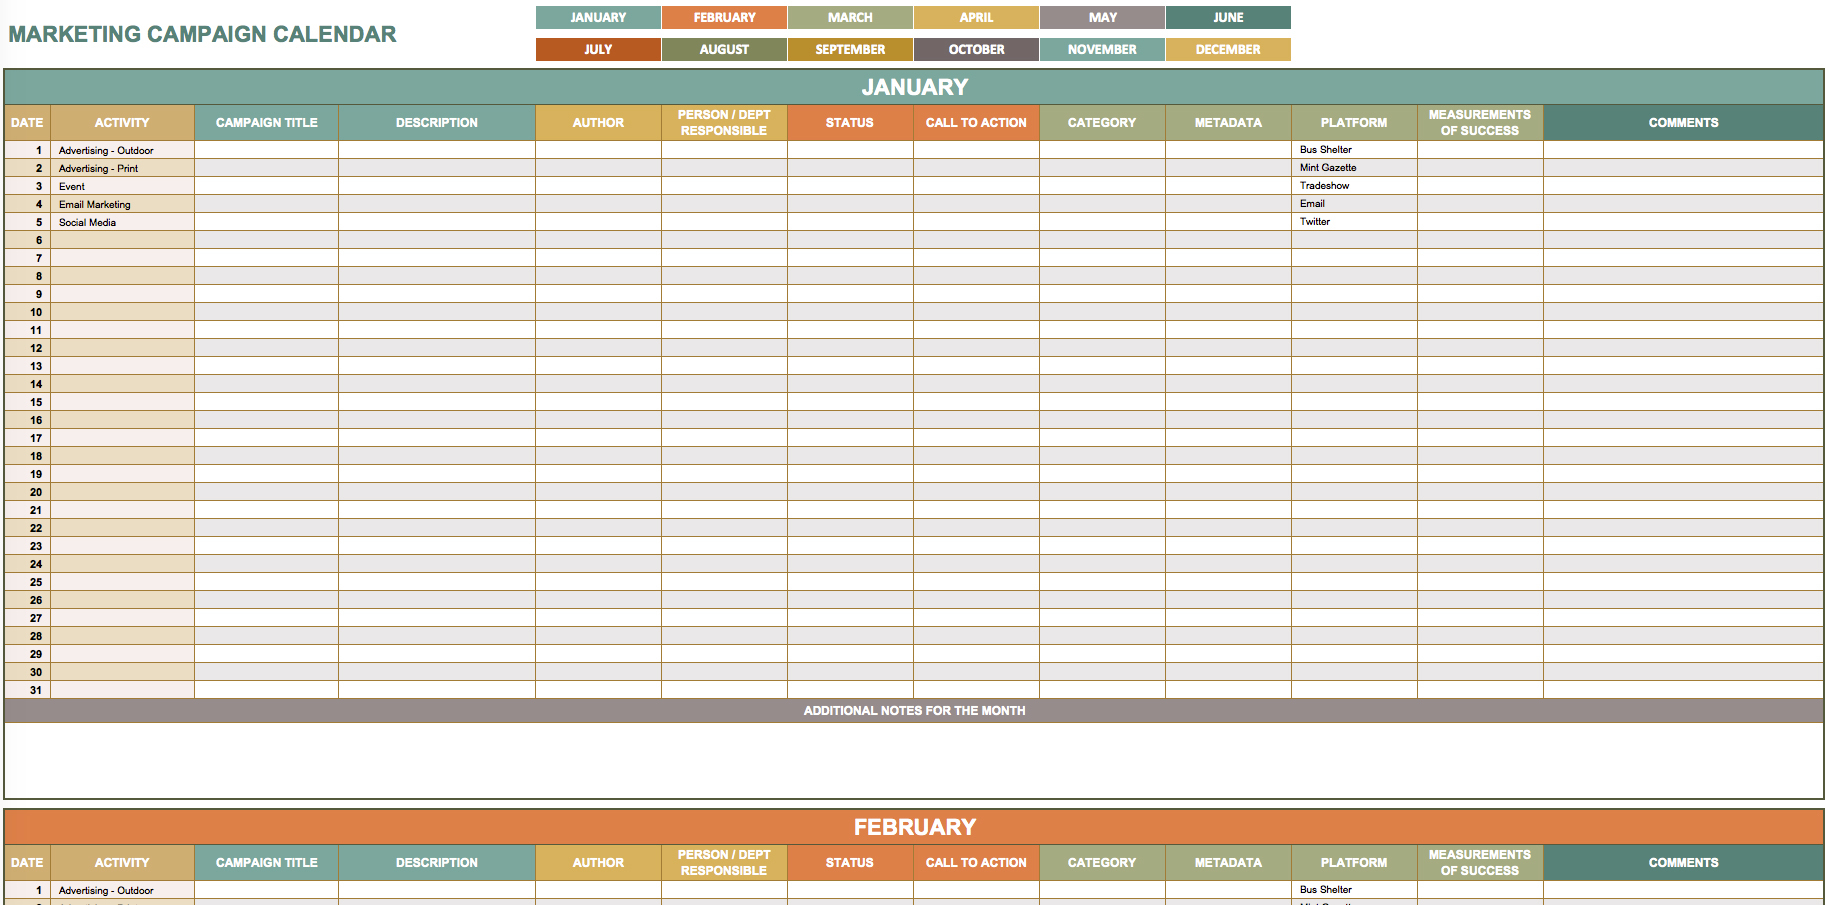 9 Free Marketing Calendar Templates For Excel - Smartsheet Inside Marketing Campaign Calendar Template Excel